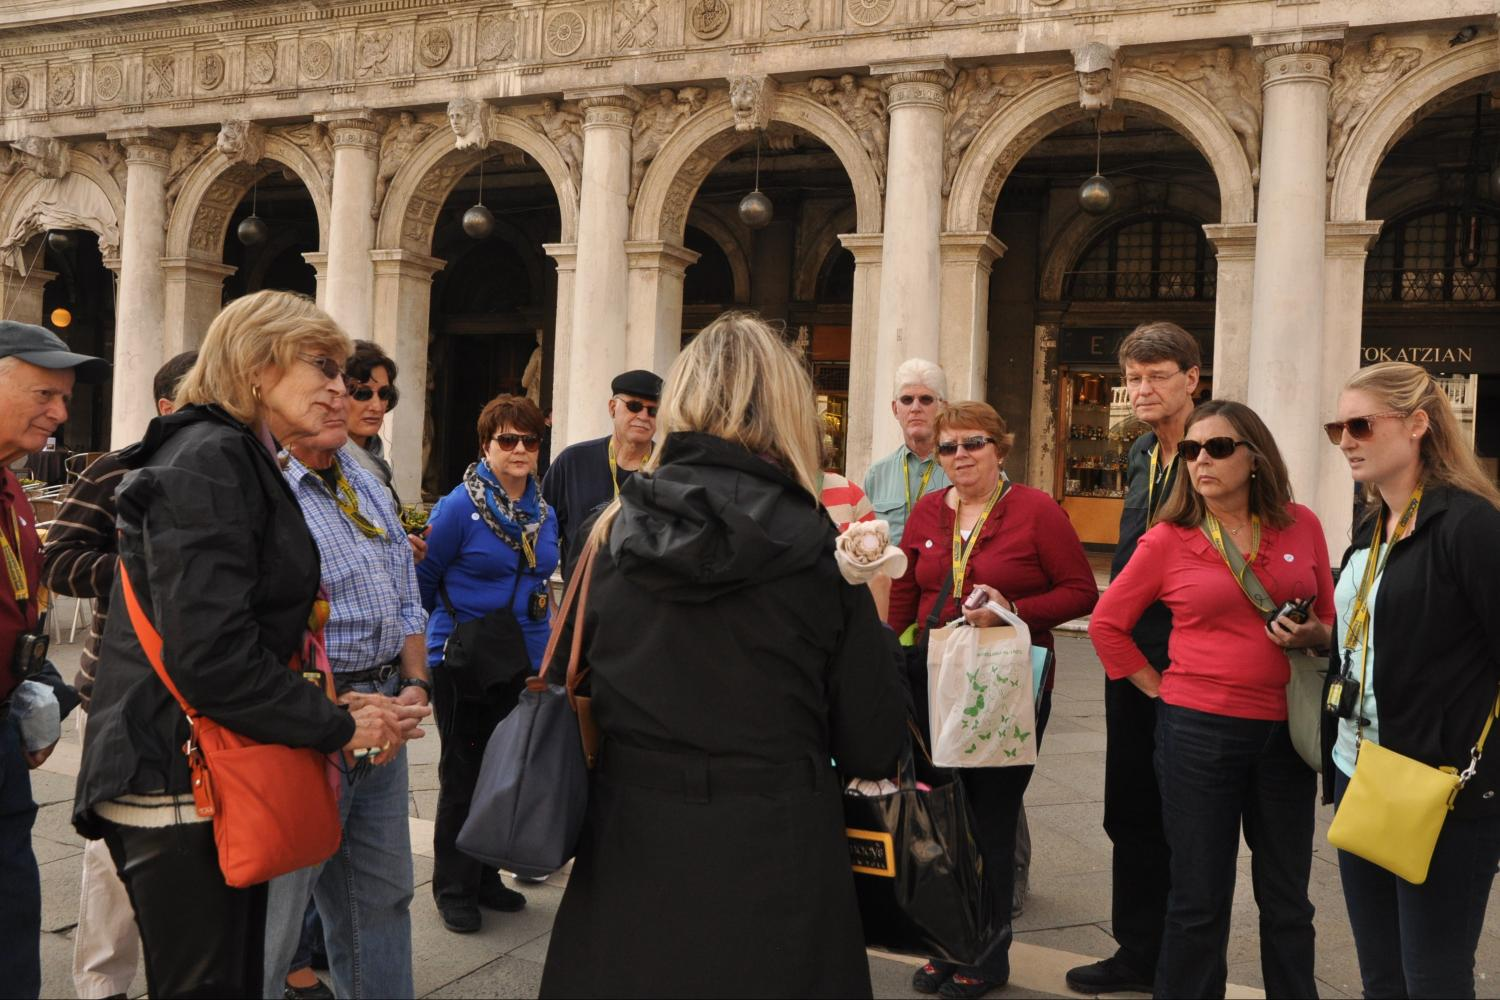 Best of Venice and St.Mark's Basilica walking tour - heart of Venice